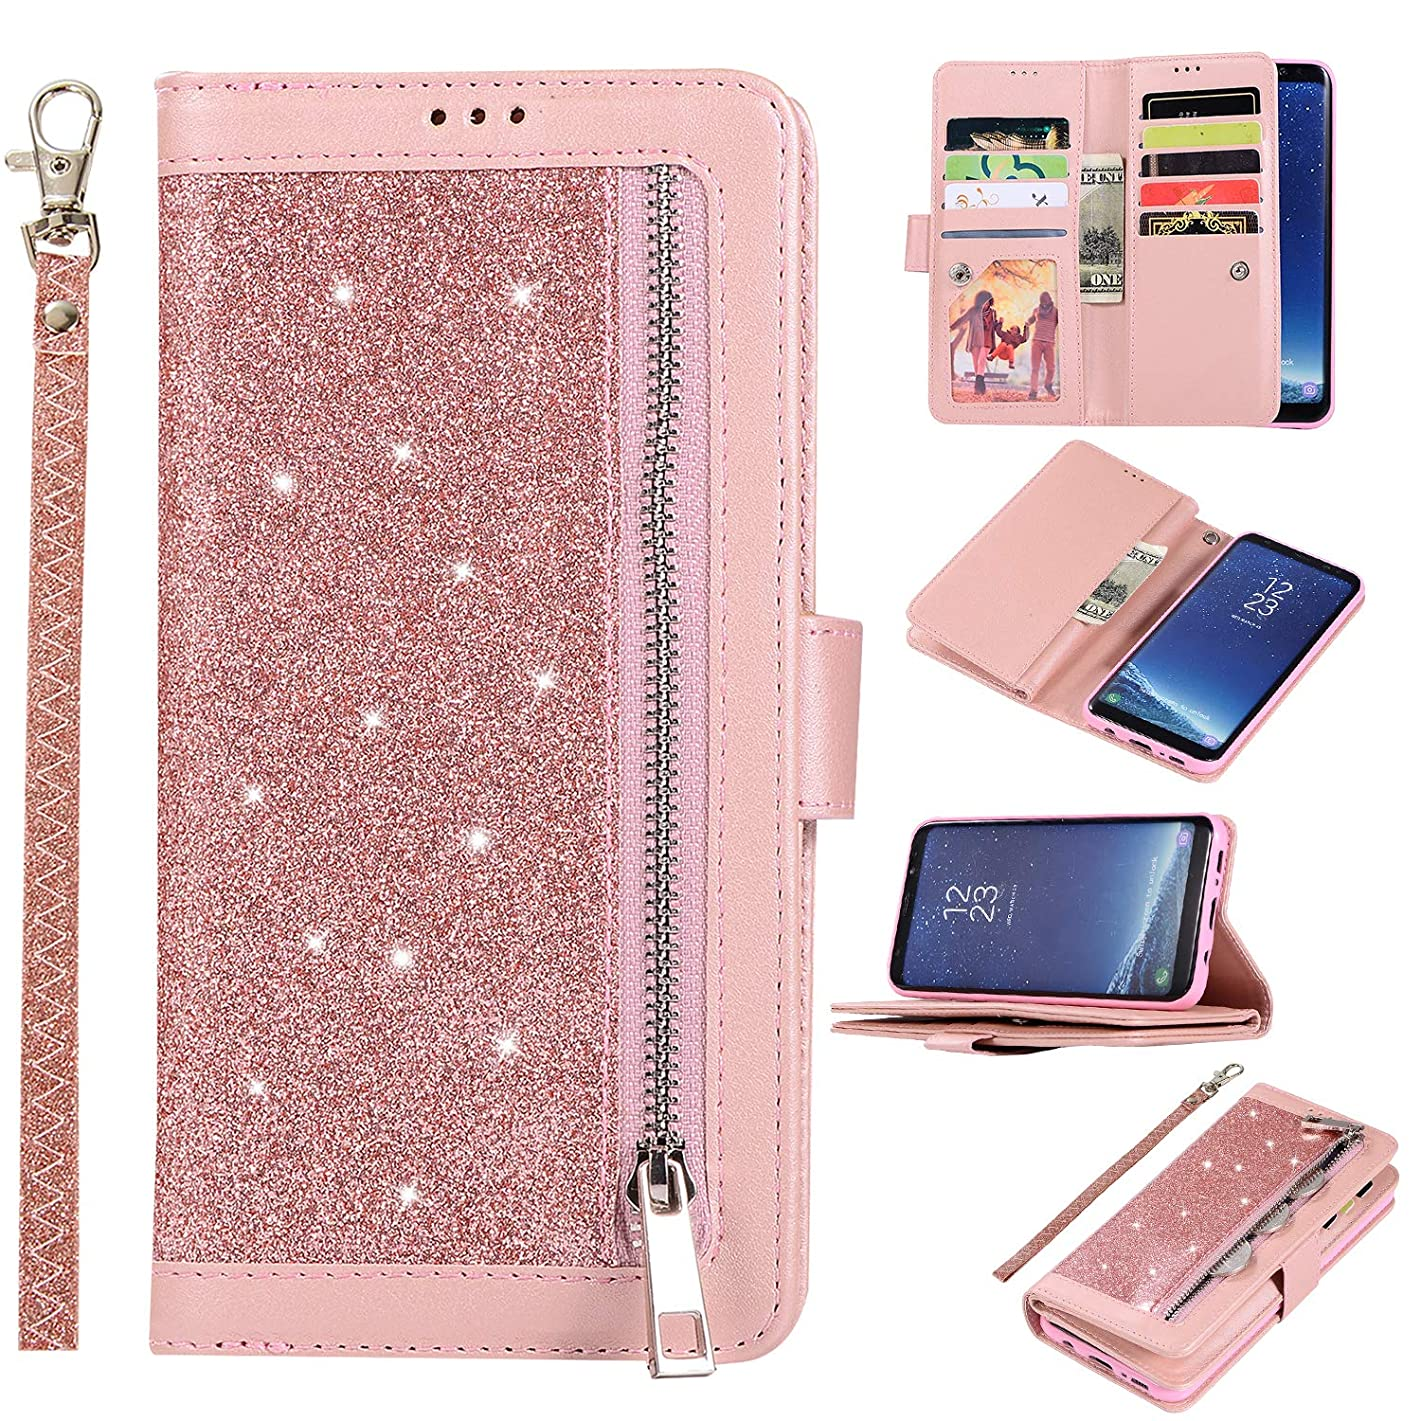 Shinyzone Glitter PU Case for Samsung Galaxy S8,Wallet Leather Flip Case with Zipper Pocket,Bling Cover with 9 Card Holder and Wrist Strap Magnetic Stand Function,Rose Gold